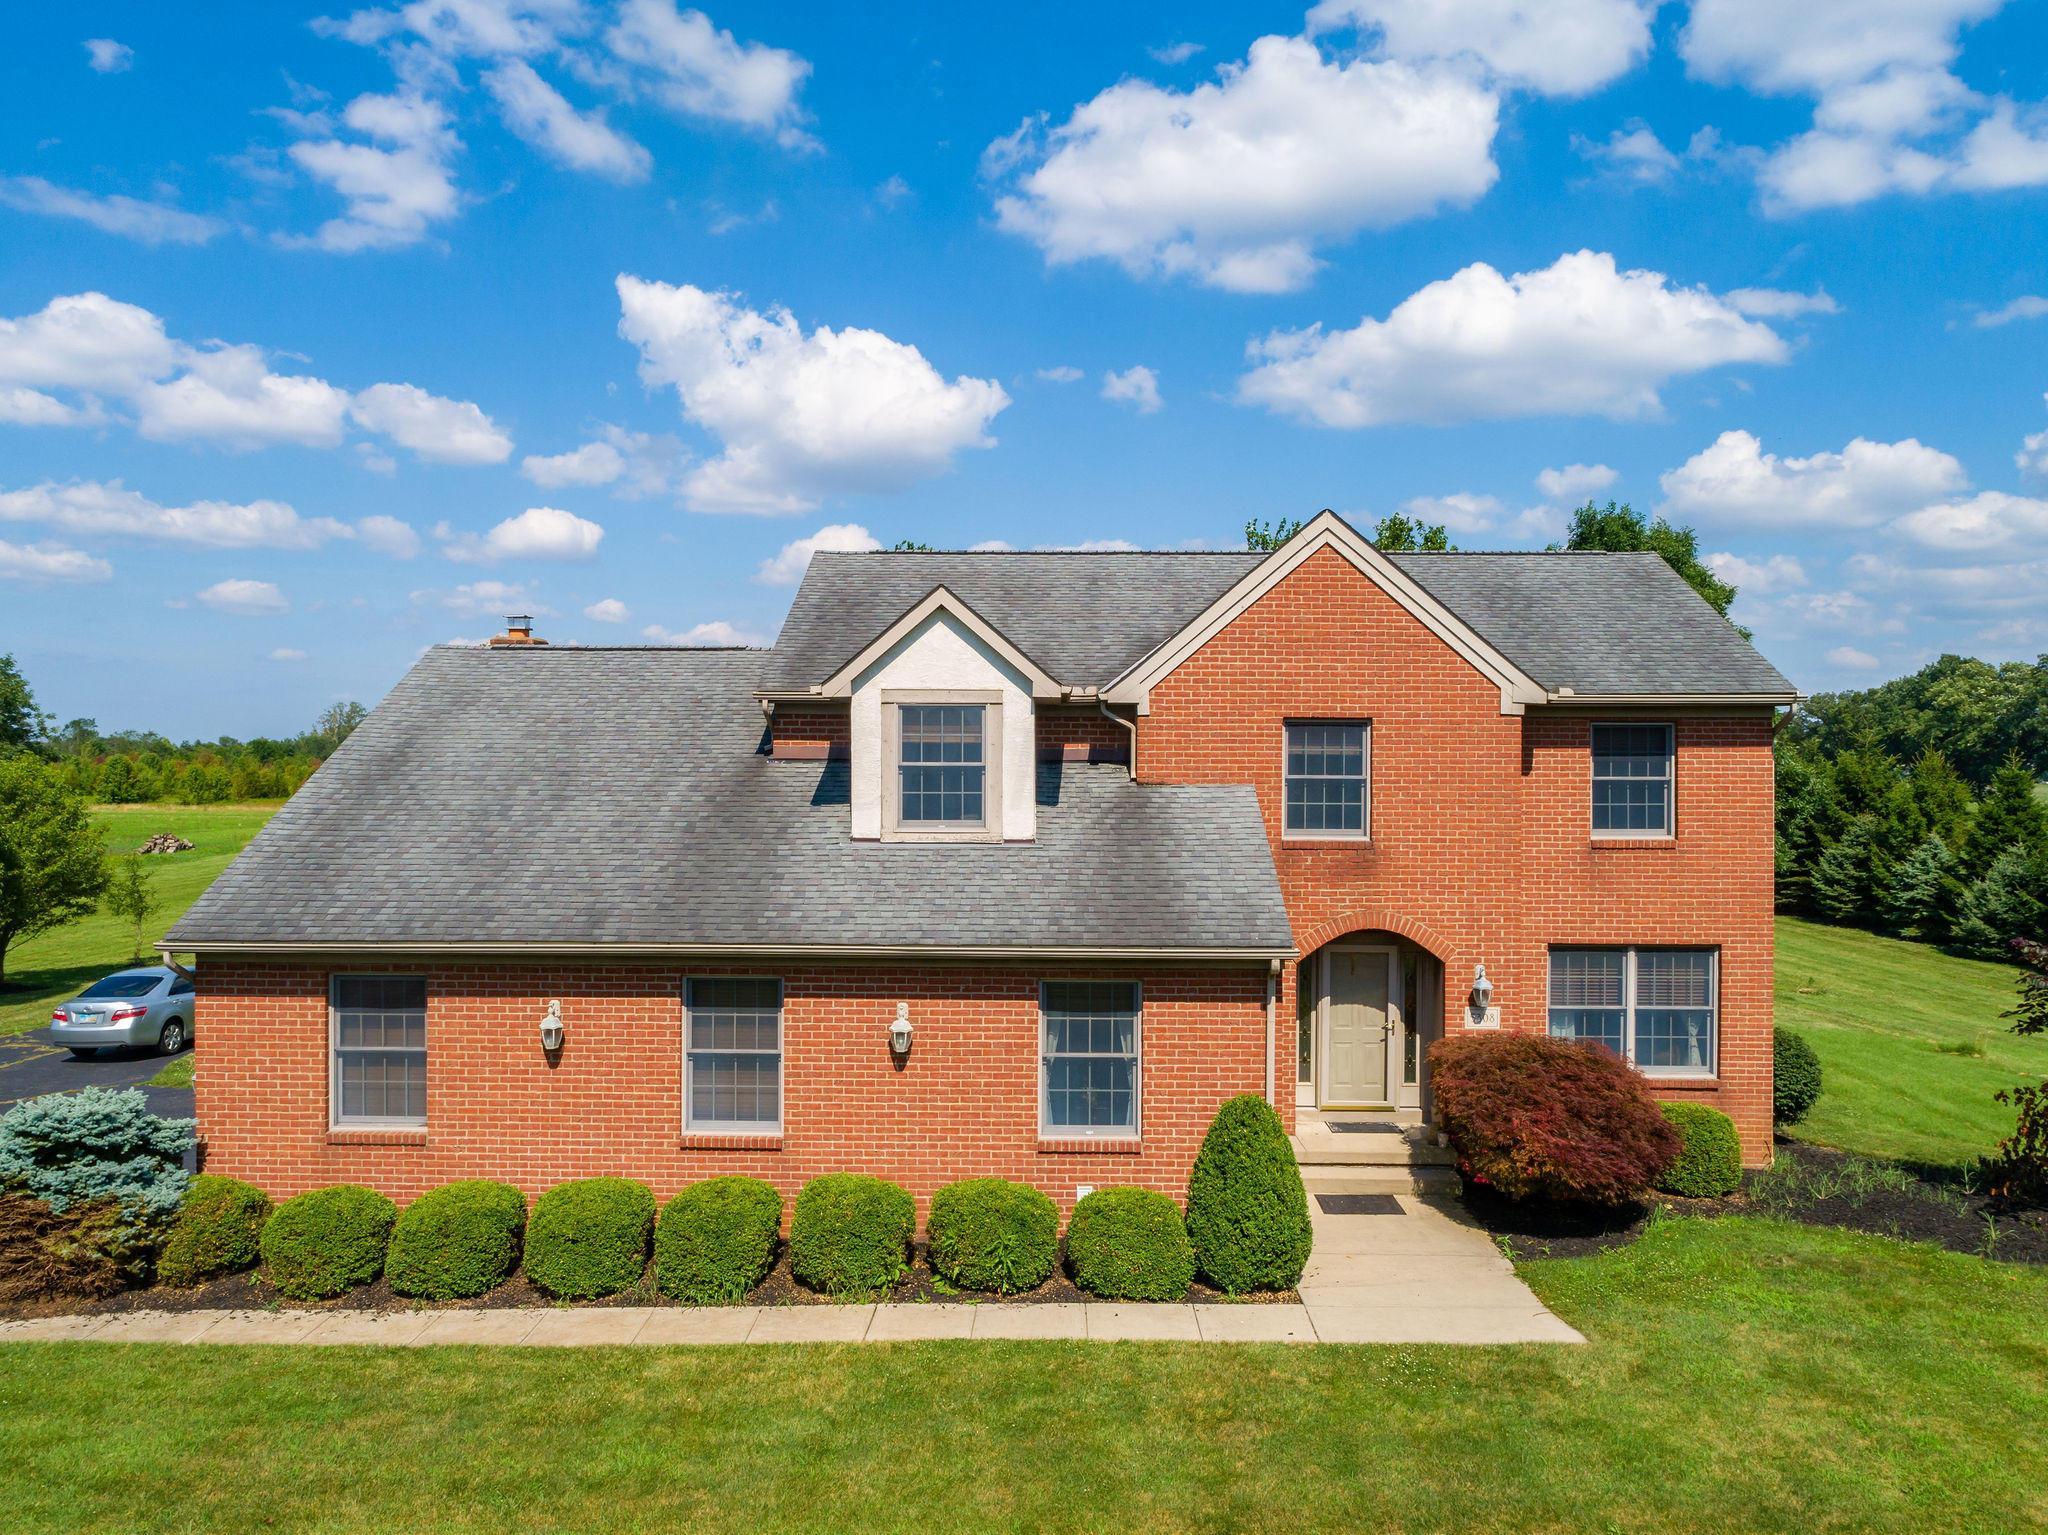 Photo of 5308 Cosgray Road, Dublin, OH 43016